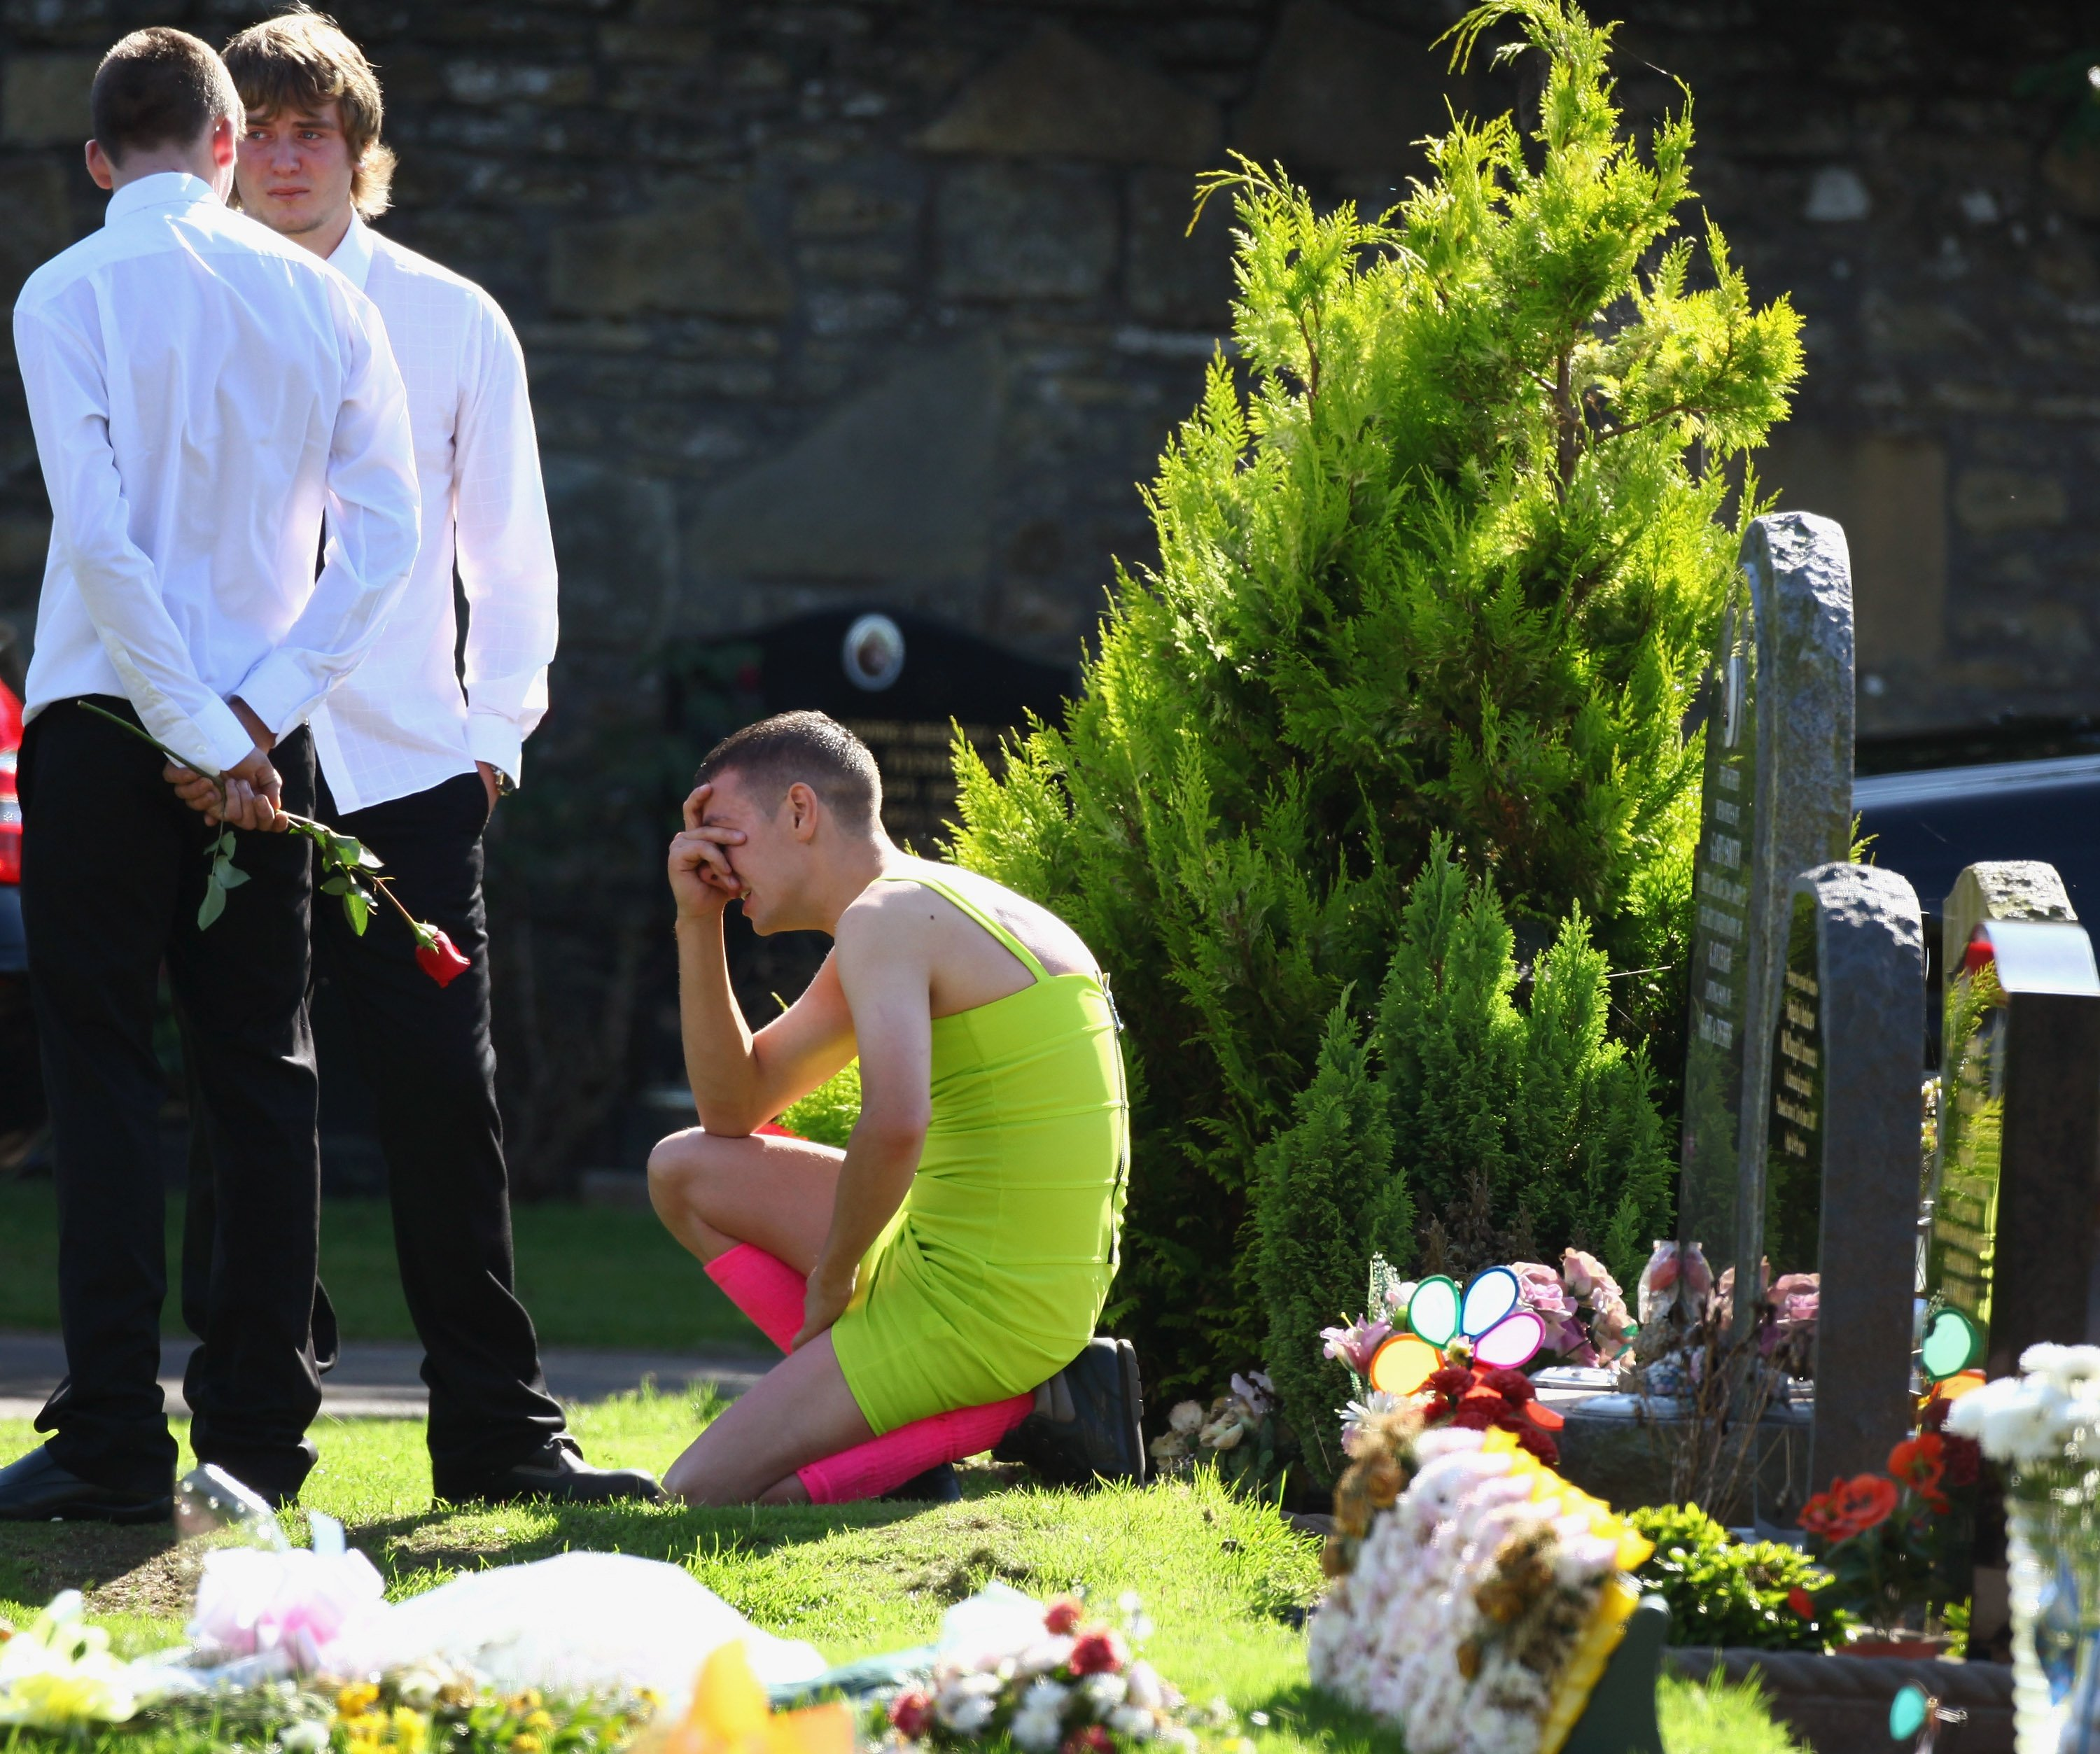 Barry Delaney crying copiously as mourners gather at Barnhill Cemetery for the funeral of  Kevin Elliot in Dundee, Scotland | Photo: Jeff J Mitchell/Getty Images